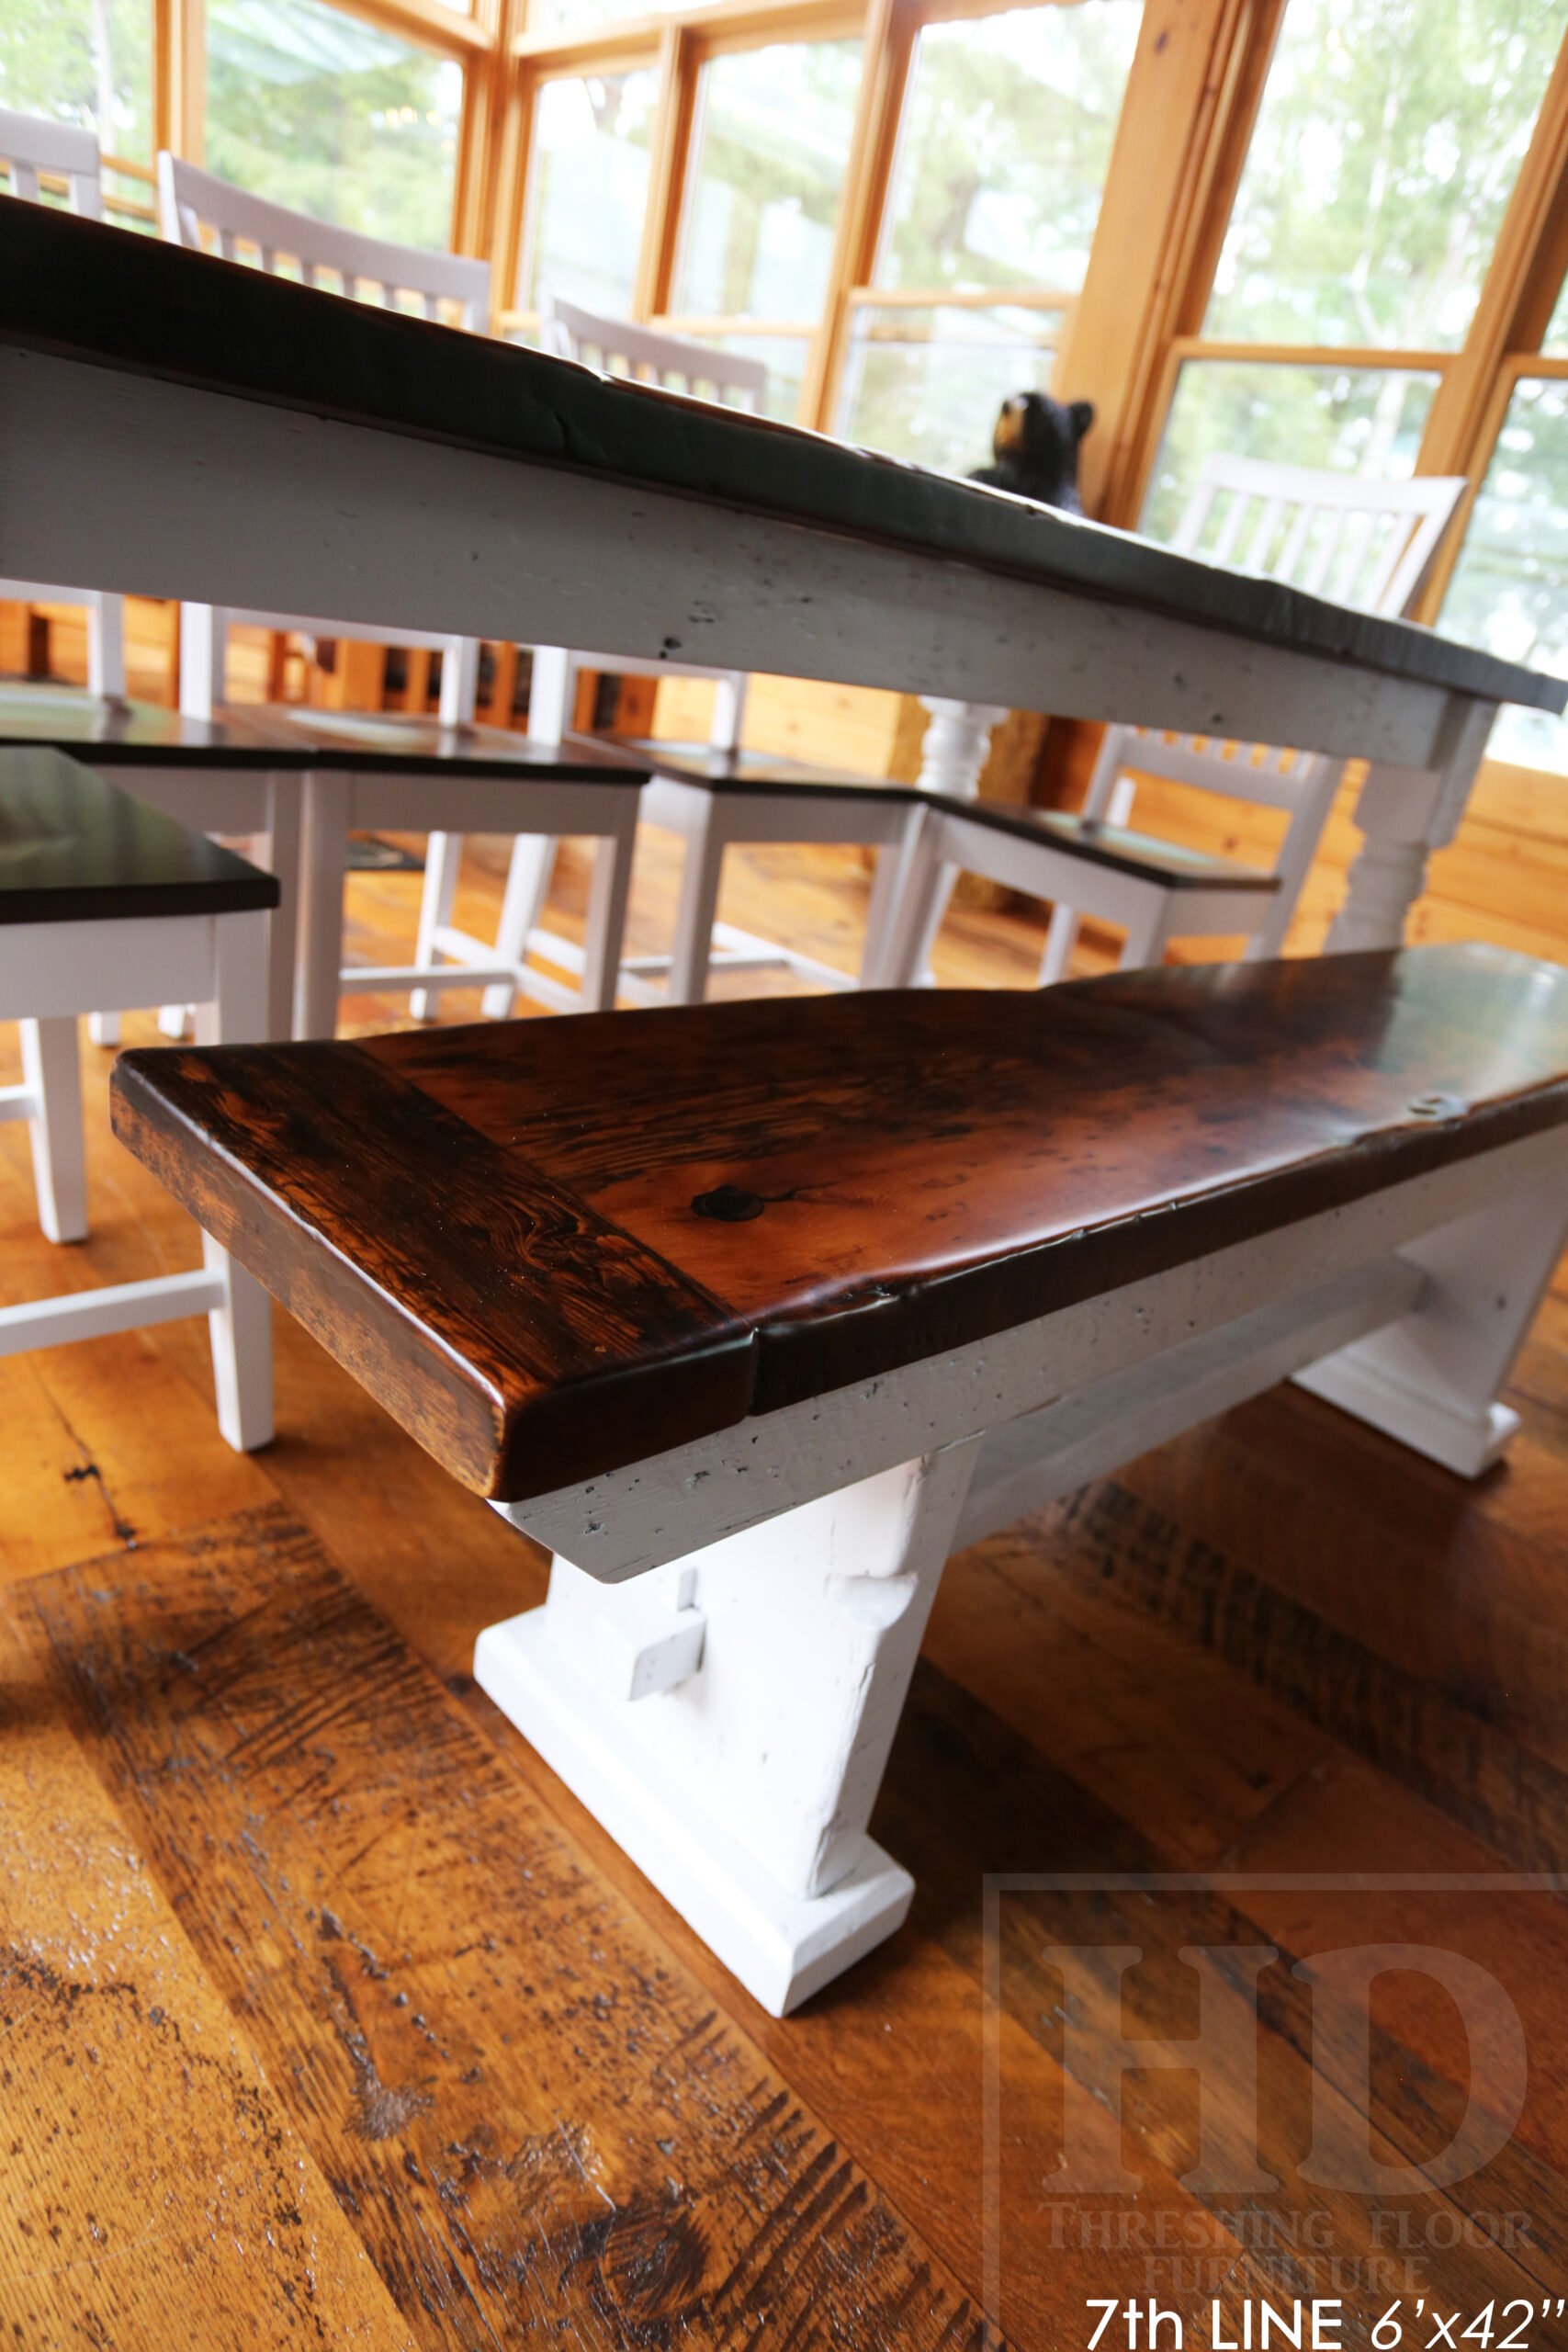 """Details: 6' Reclaimed Wood Table we made for an Ontario cottage - 42"""" wide - Harvest Base - Turned Windbrace Beam Legs [painted white] - Old Growth Hemlock Threshing Floor Construction - Original edges & distressing maintained - Premium epoxy + satin polyurethane finish - 5' Trestle Bench - 5 Hudson Chairs / Wormy Maple / White Frame + Seat stained colour of table - www.table.ca"""